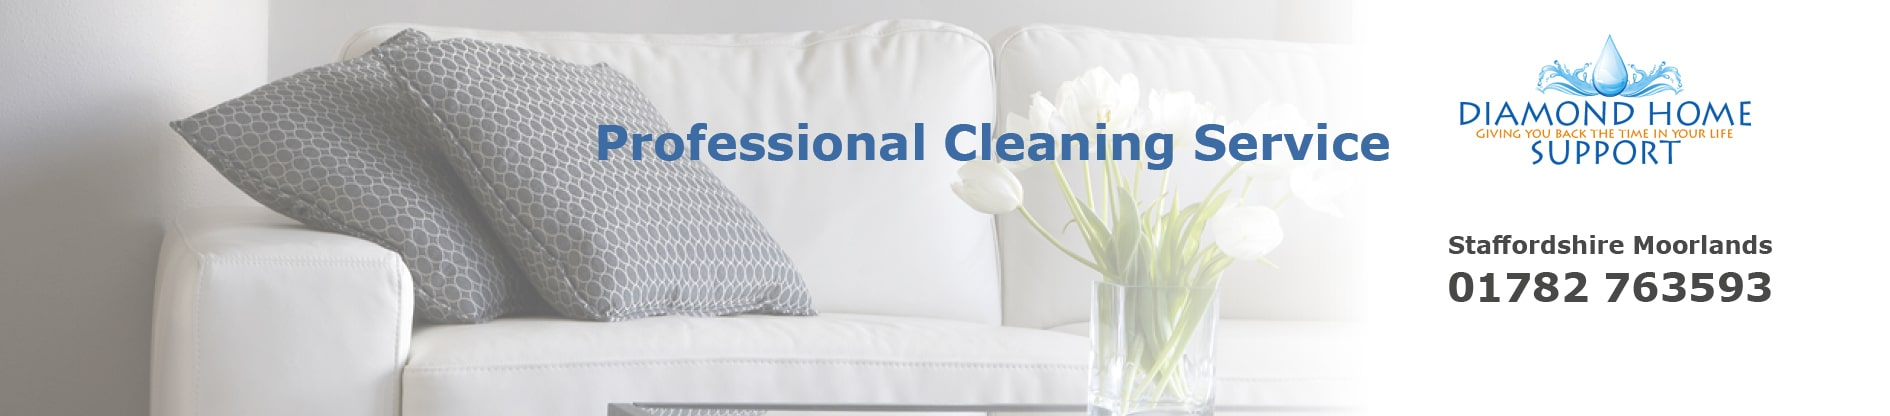 Cleaners in Staffordshire Moorlands